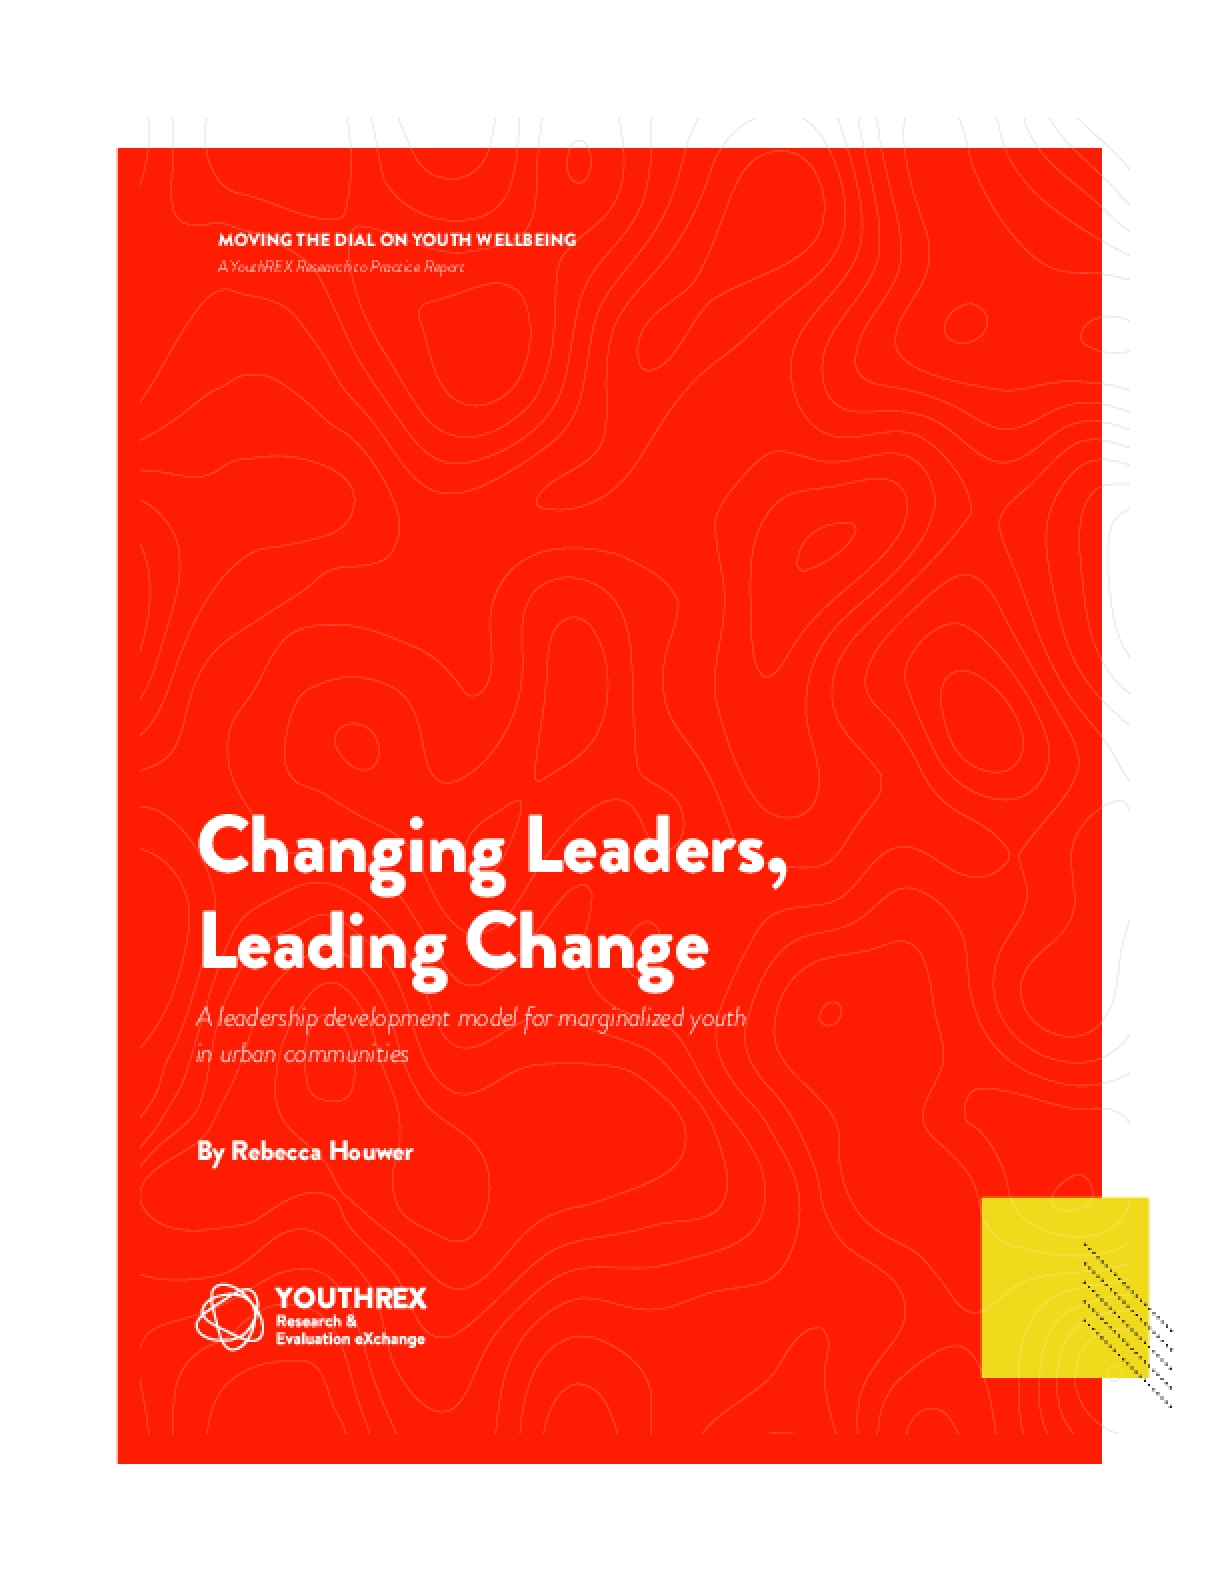 Changing Leaders, Leading Change: A Leadership Development Model for Marginalized Youth in Urban Communities